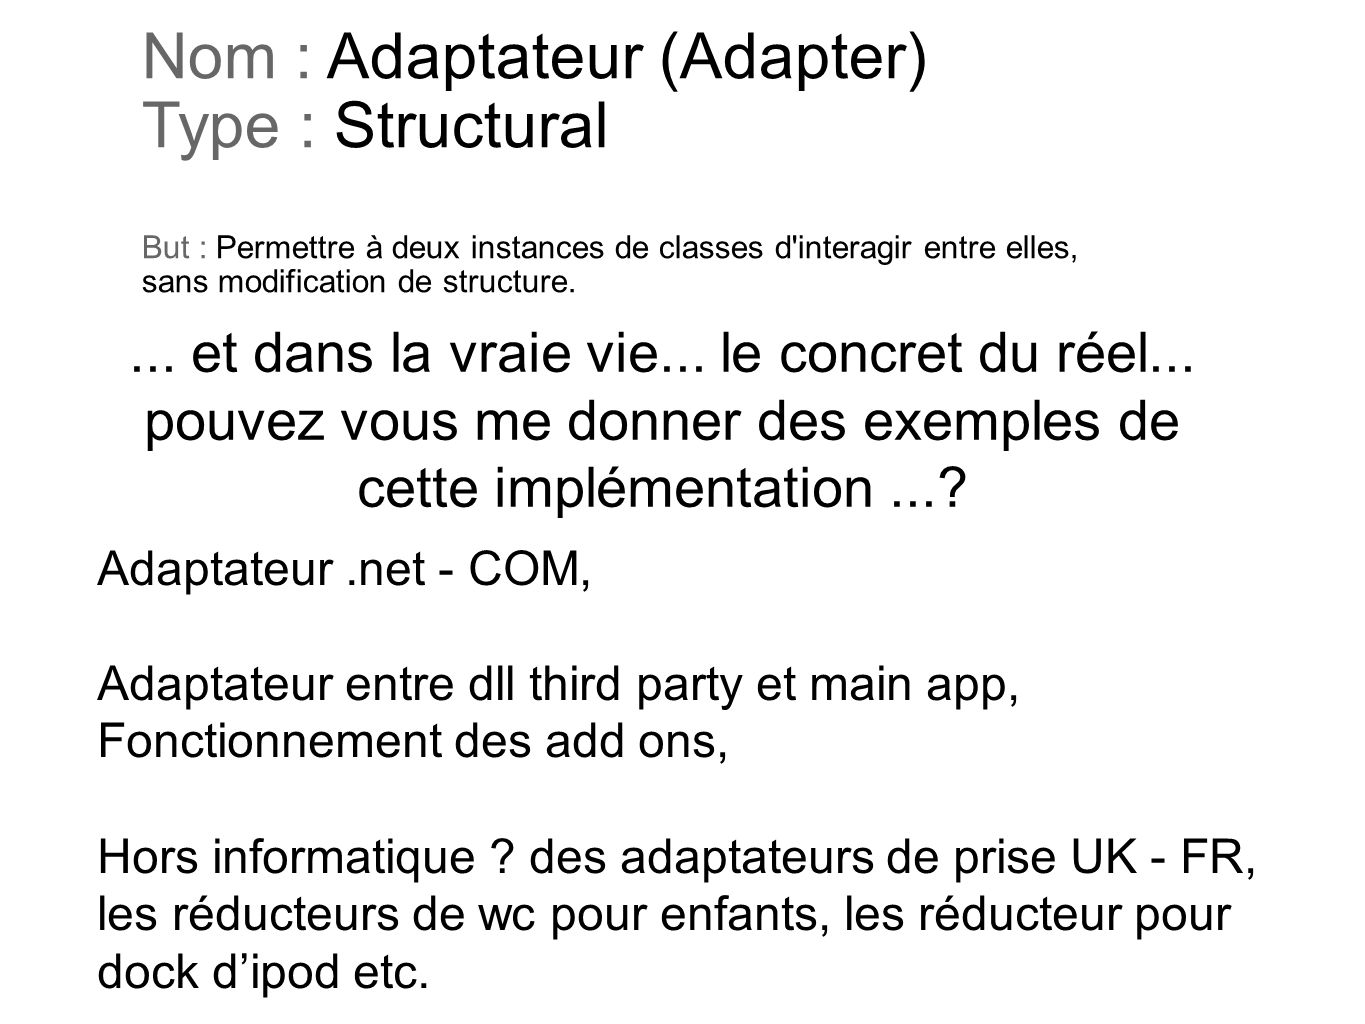 Nom : Adaptateur (Adapter) Type : Structural But : Permettre à deux instances de classes d interagir entre elles, sans modification de structure.